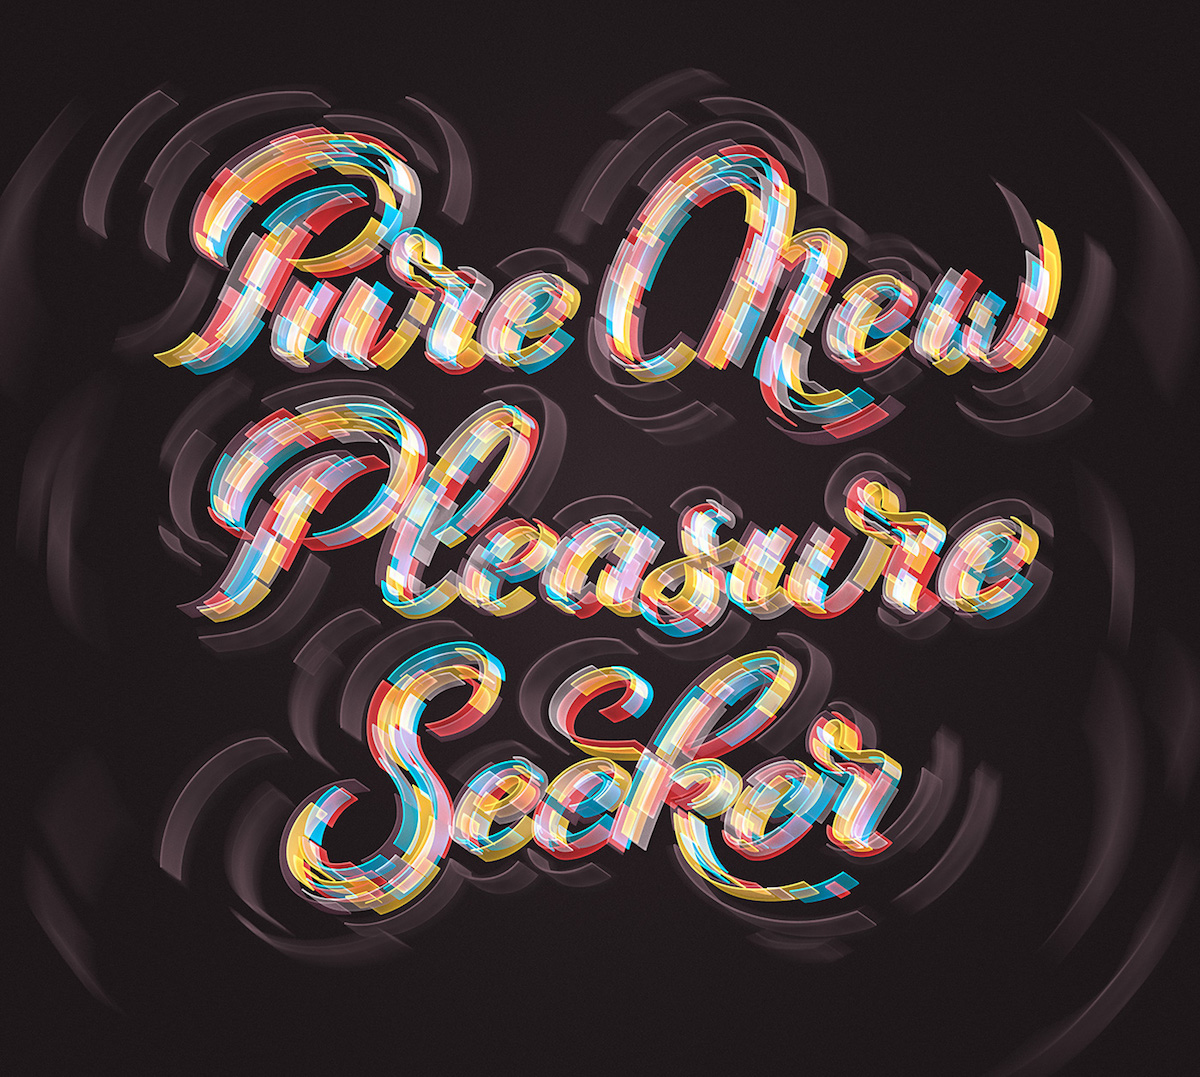 Mario De Meyer's tyopgraphic tribute to the song Pure Pleasure Seeker.